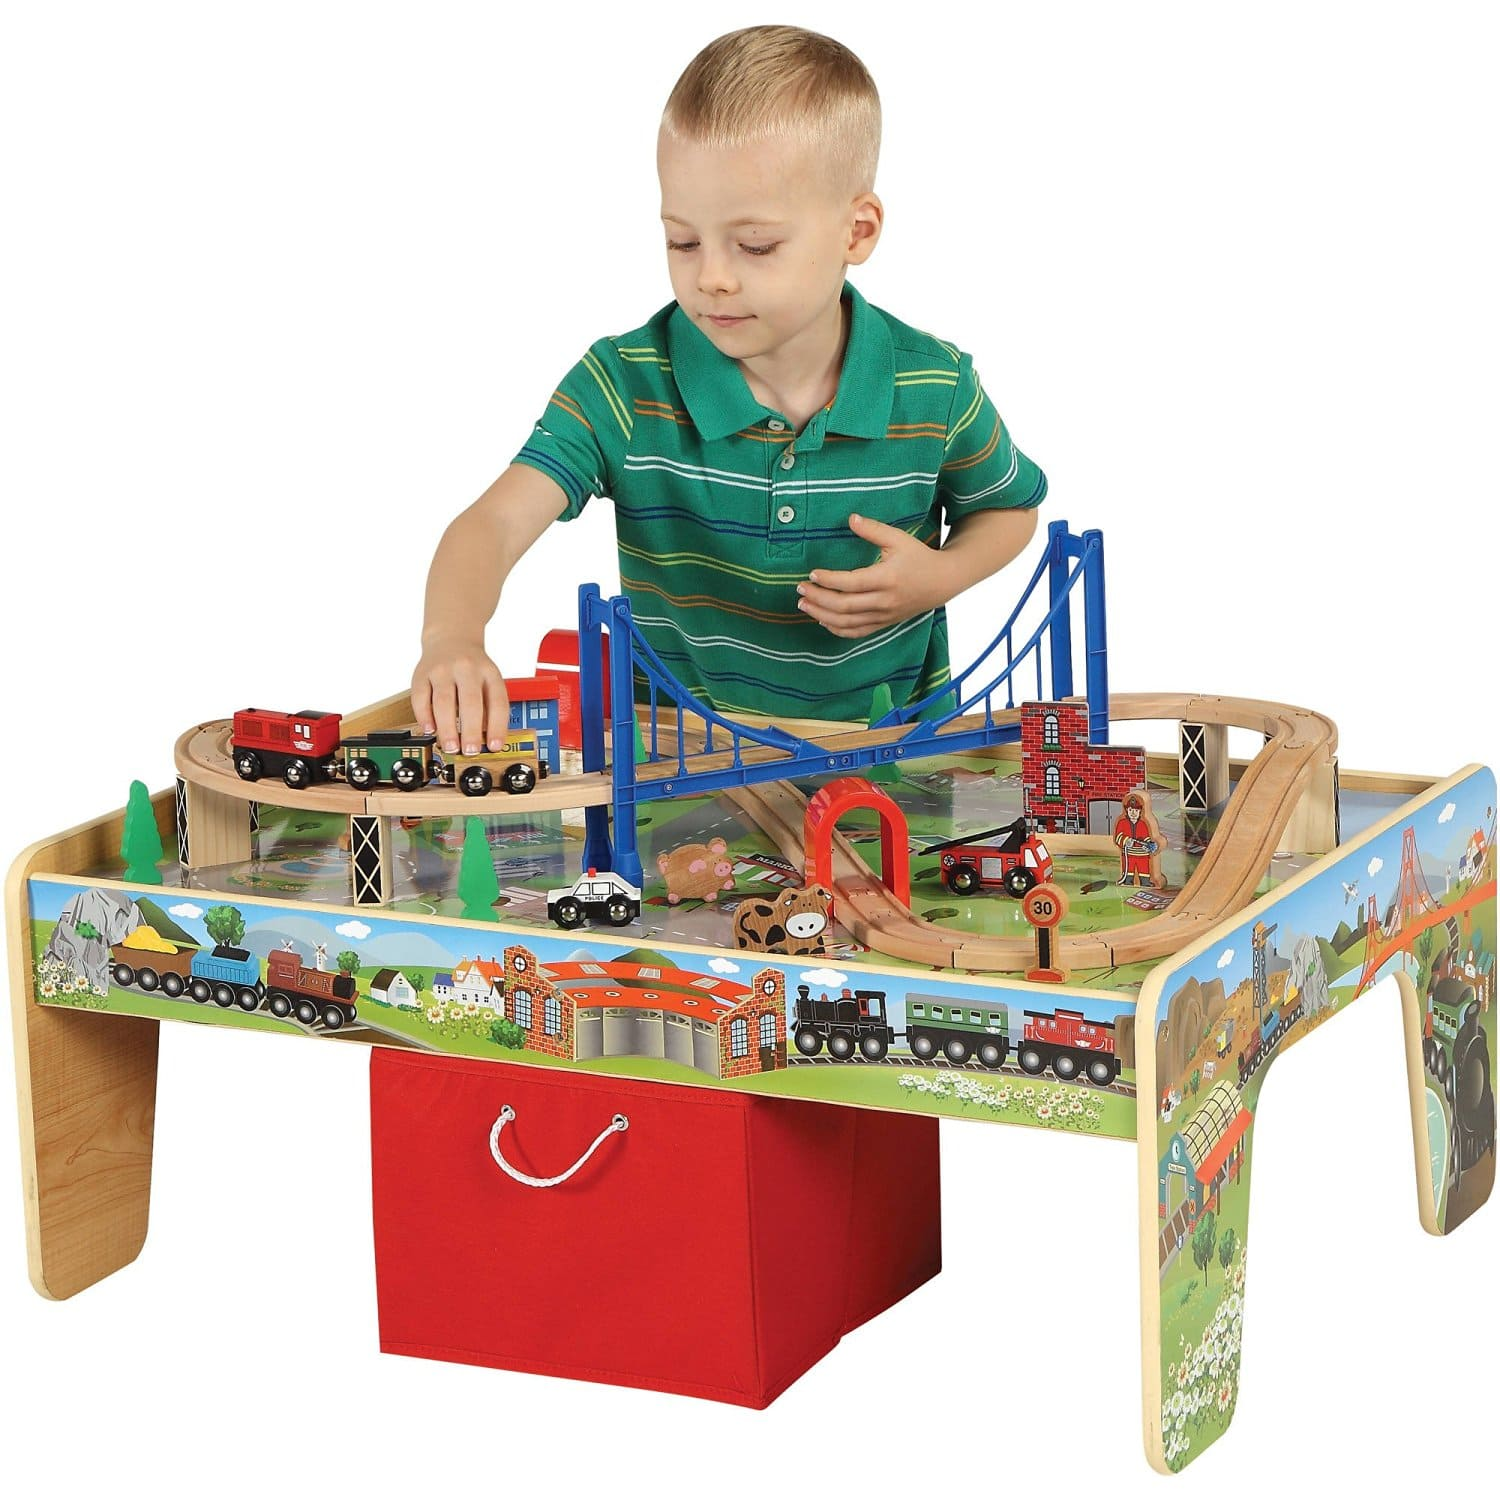 50-Piece Train Set with 2-in-1 Activity Table $37 + Free Store Pickup @ Walmart